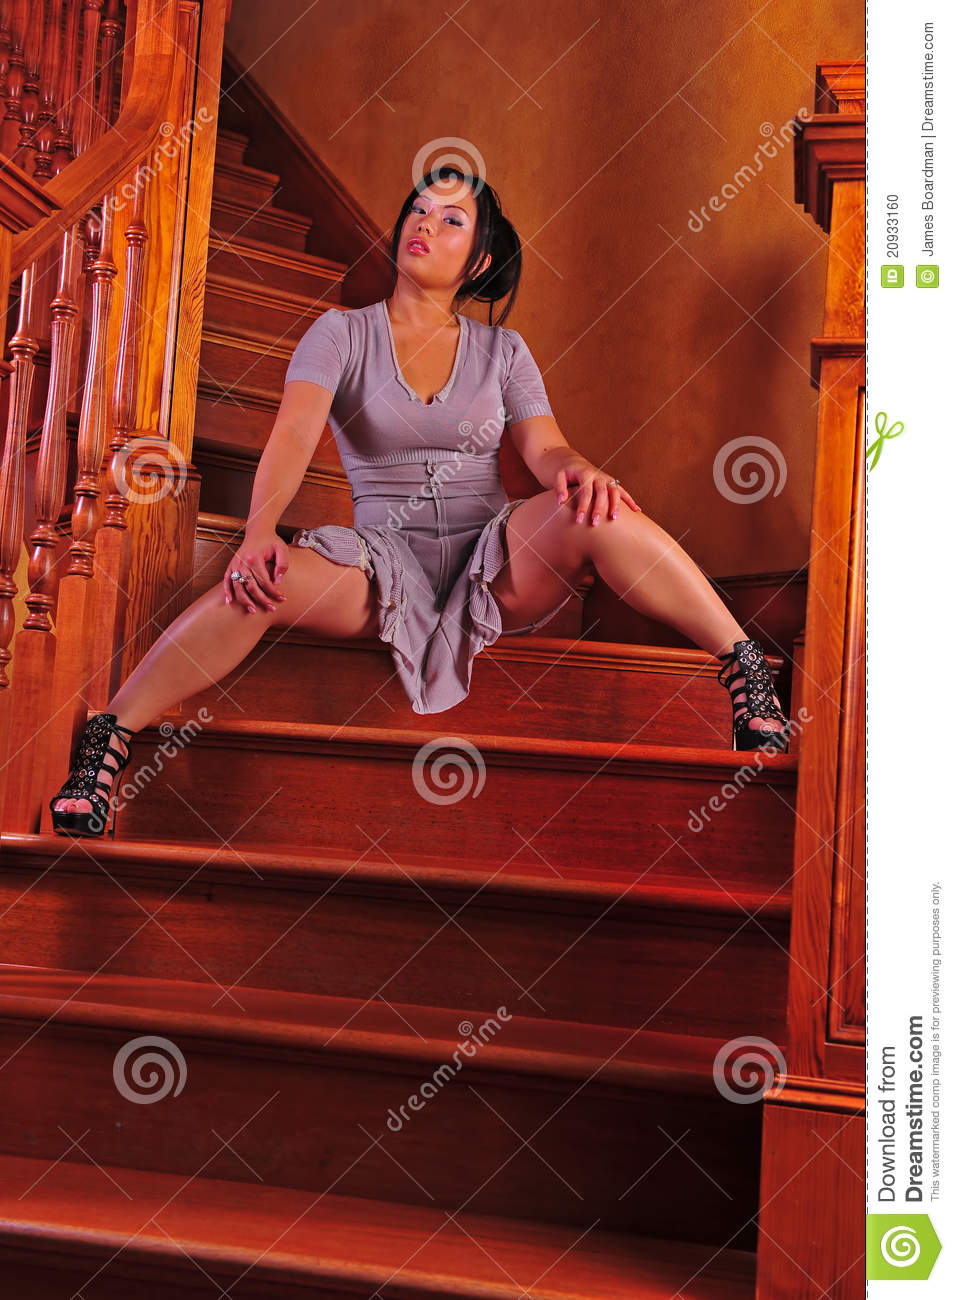 Asian Woman Waiting On Stairs Stock Photo Image 20933160